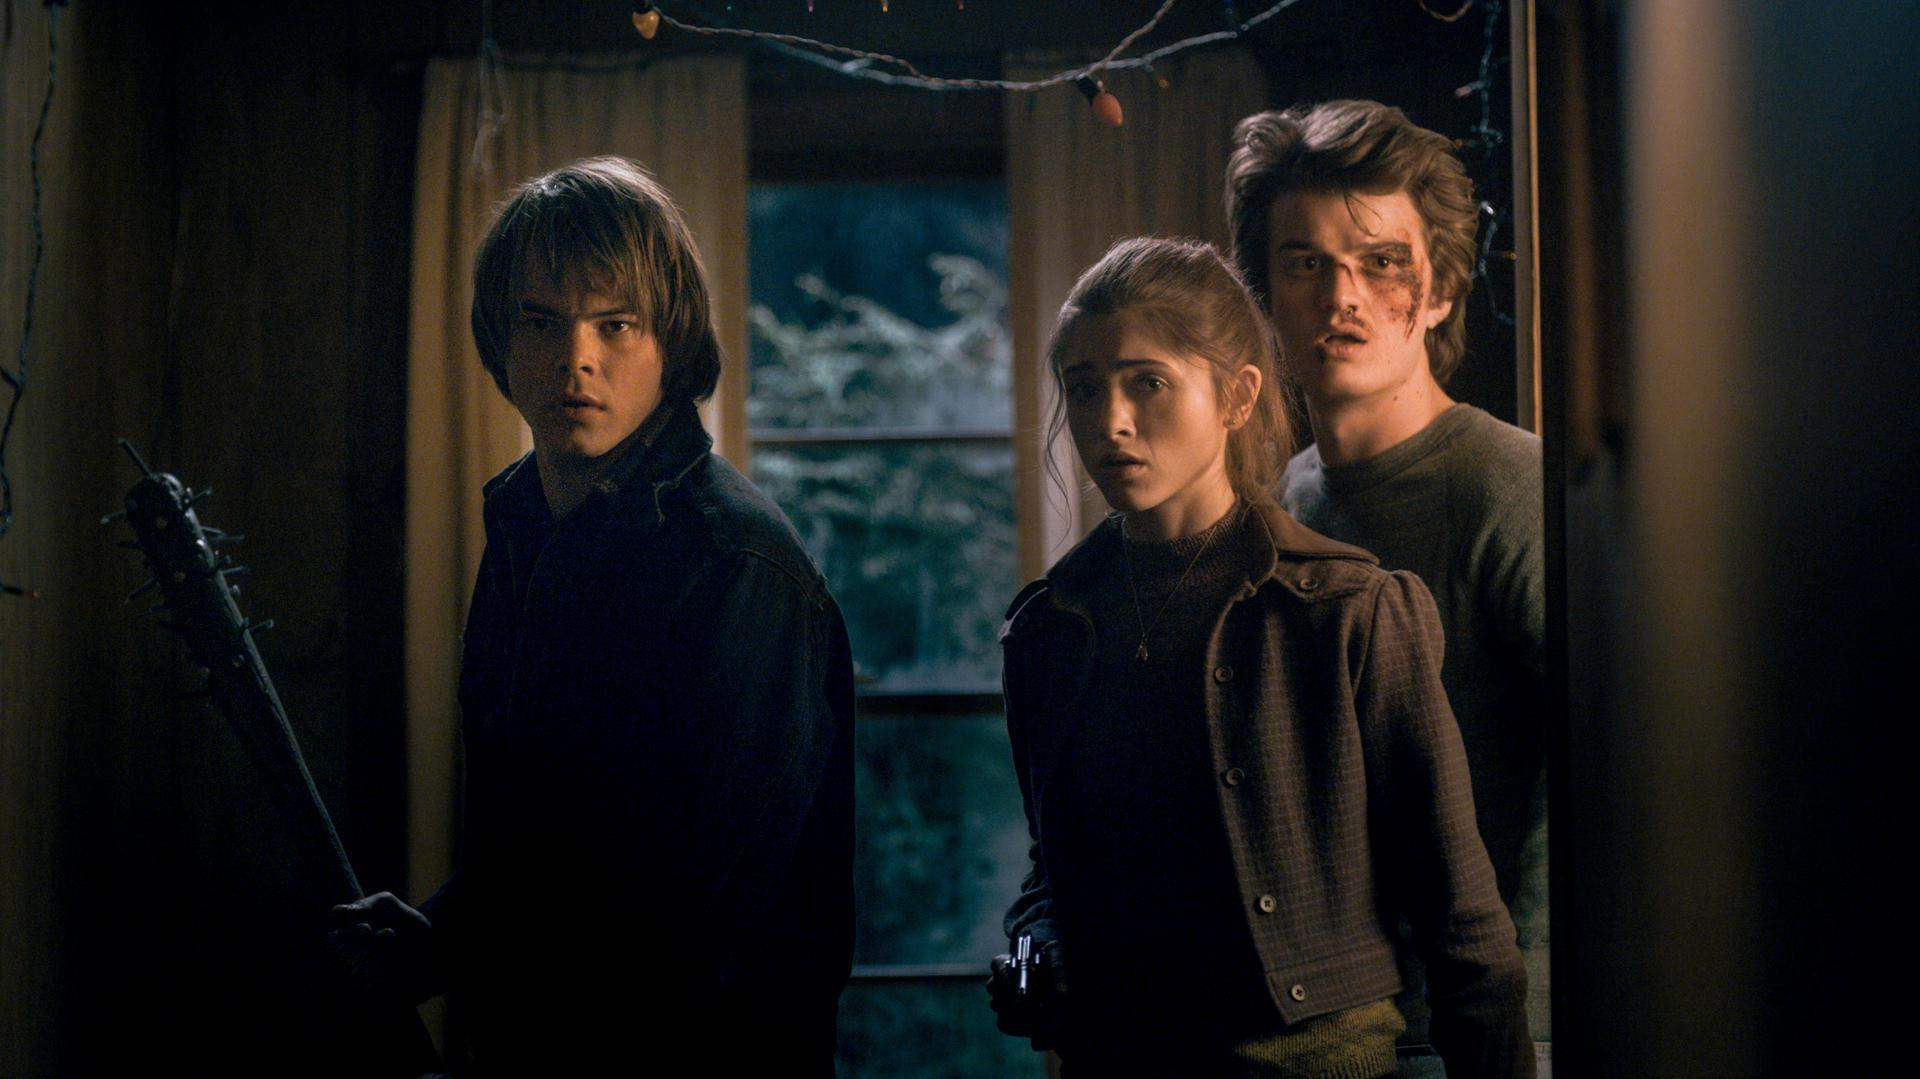 Stranger-Things-Teen-Trio